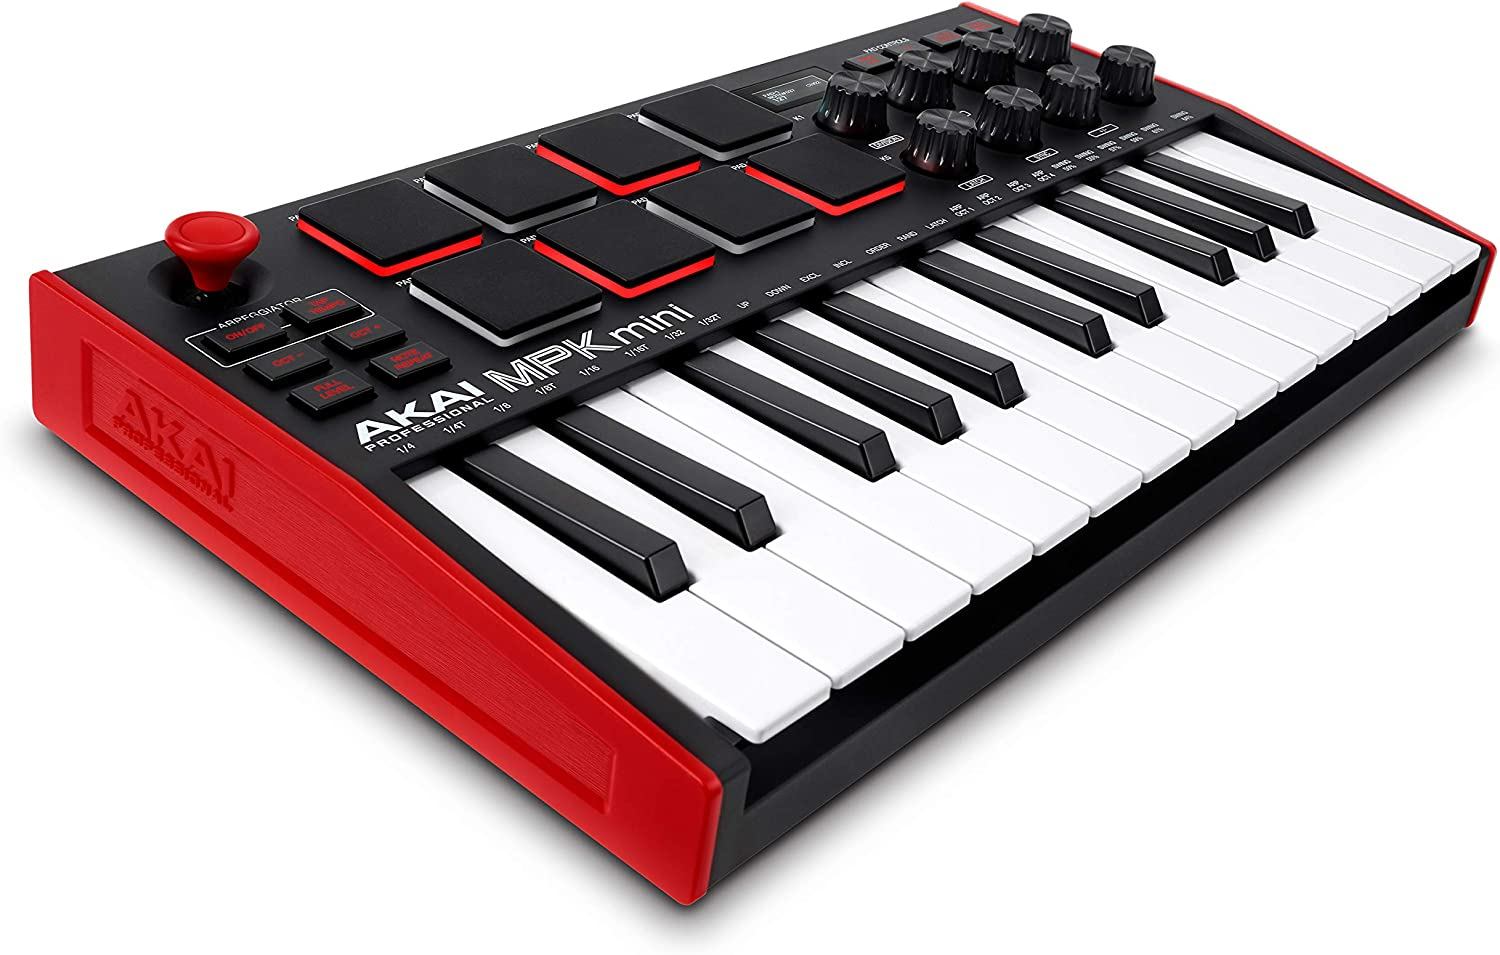 AKAI Professional MPK Mini MK3 | 25 Key USB MIDI Keyboard Controller With 8 Backlit Drum Pads, 8 Knobs and Music Production Software included